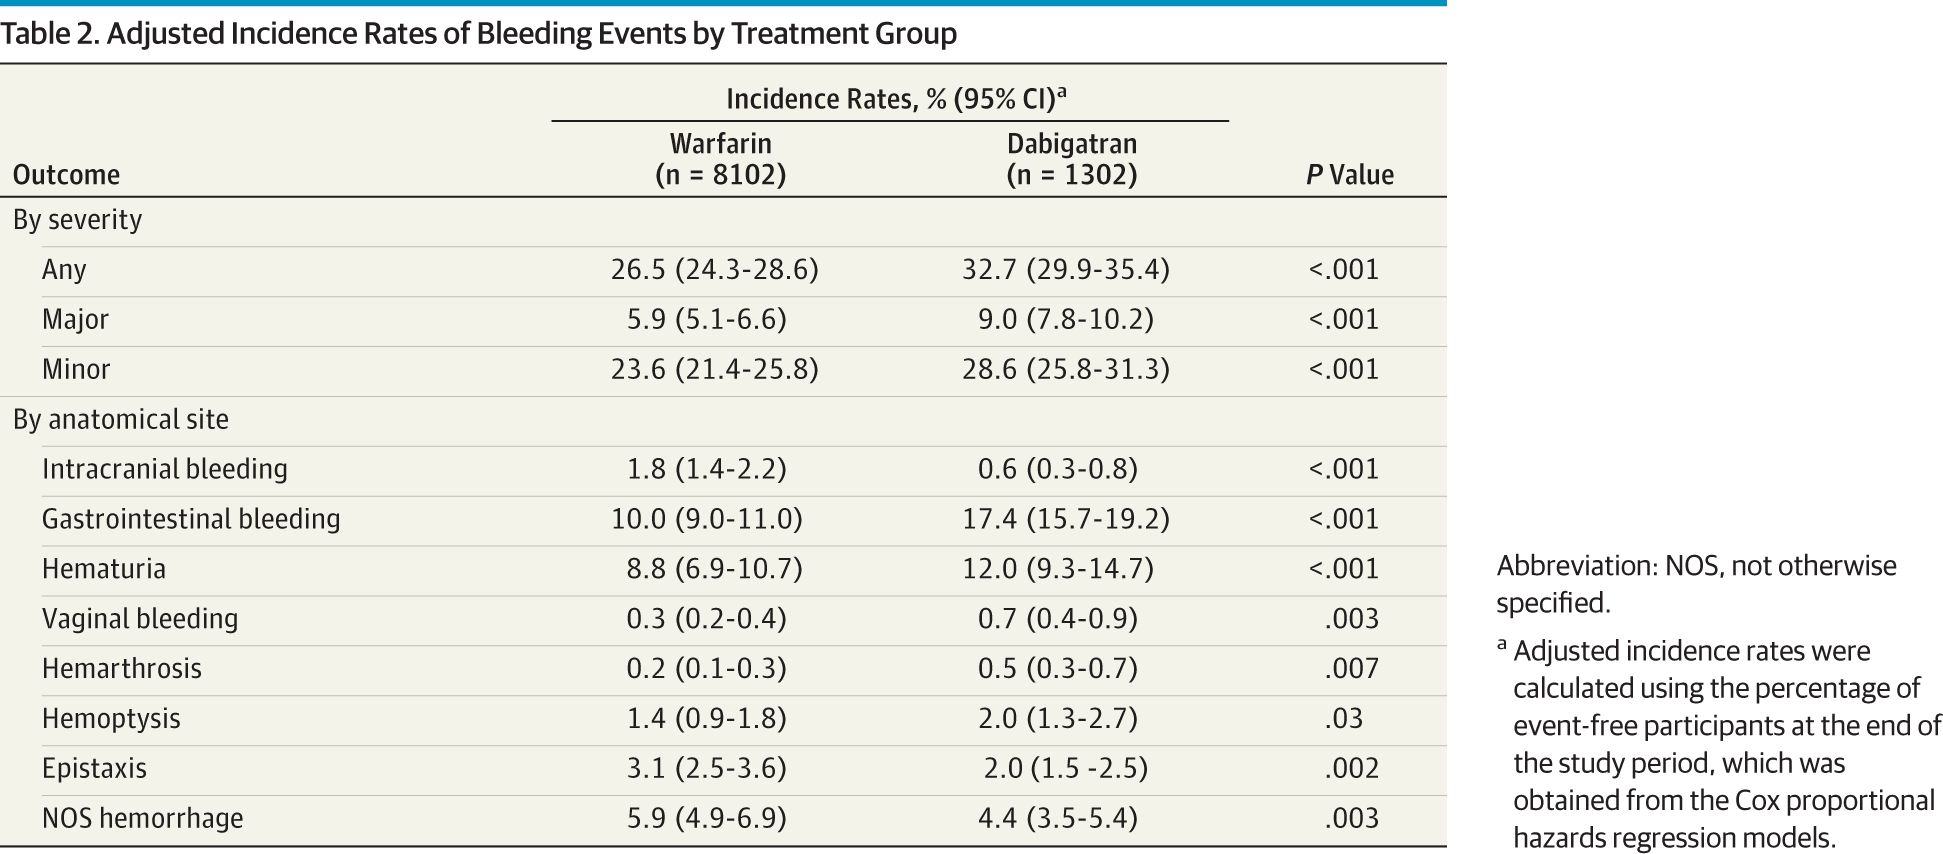 Risk of Bleeding With Dabigatran in Atrial Fibrillation